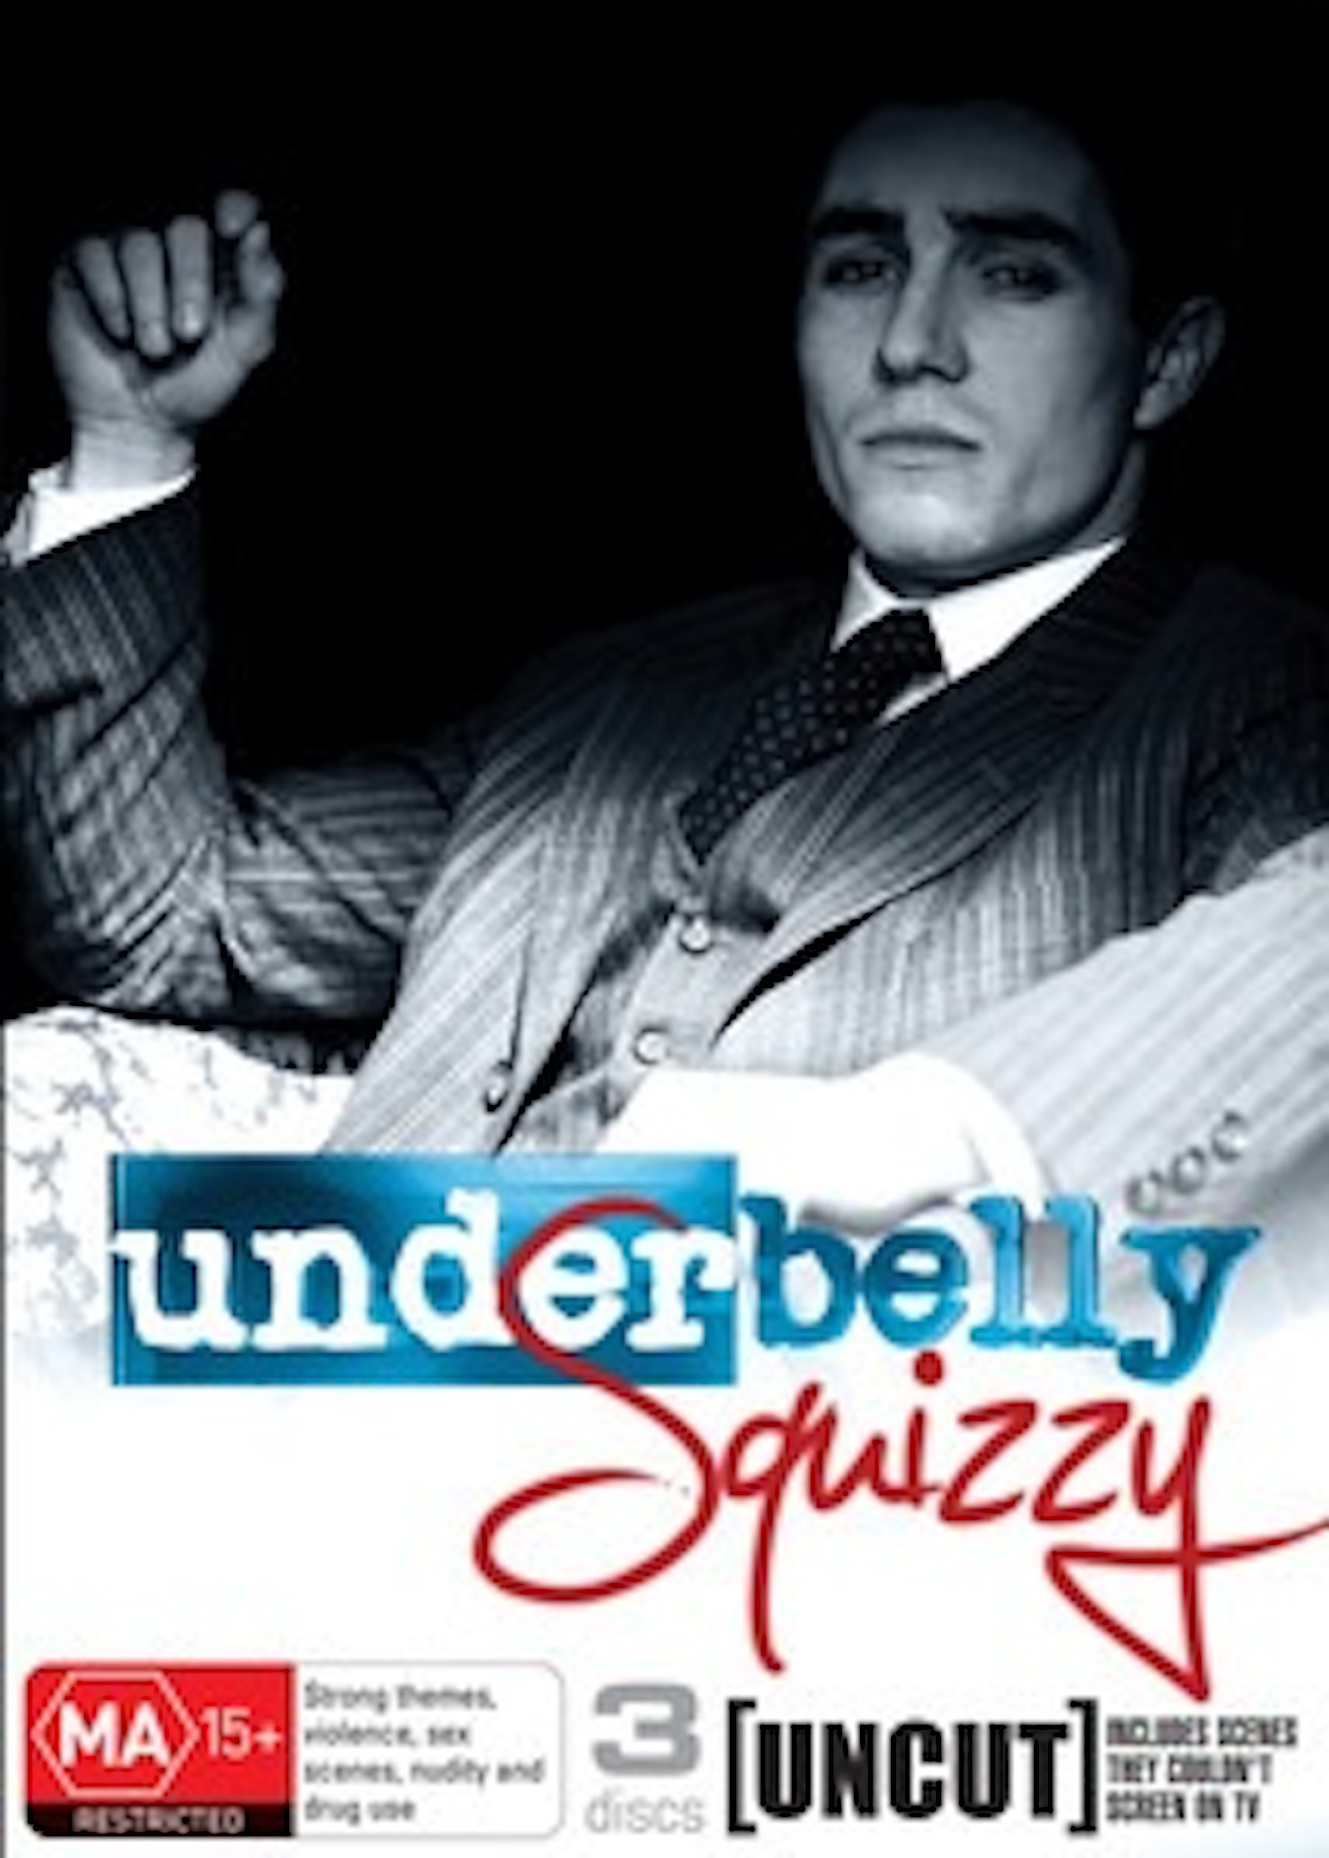 SS.1.Underbelly_Squizzy